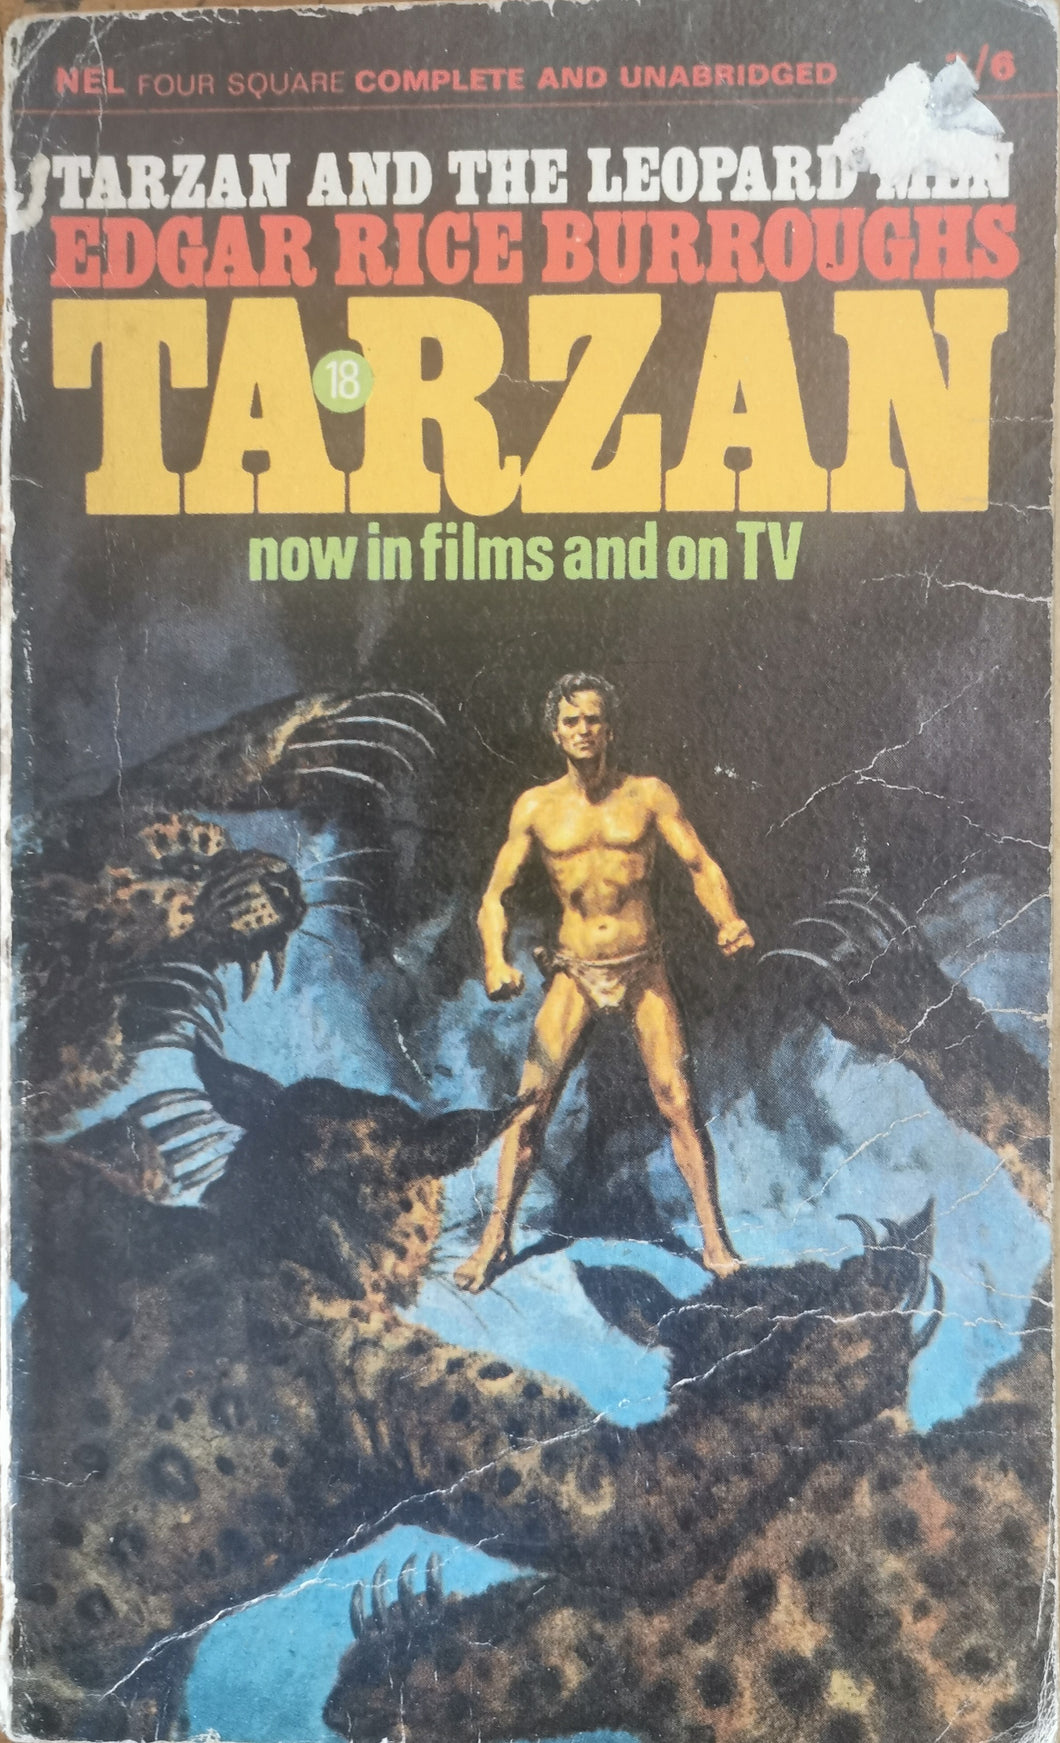 Tarzan and the Leopard Man - Edgar Rice Burroughs